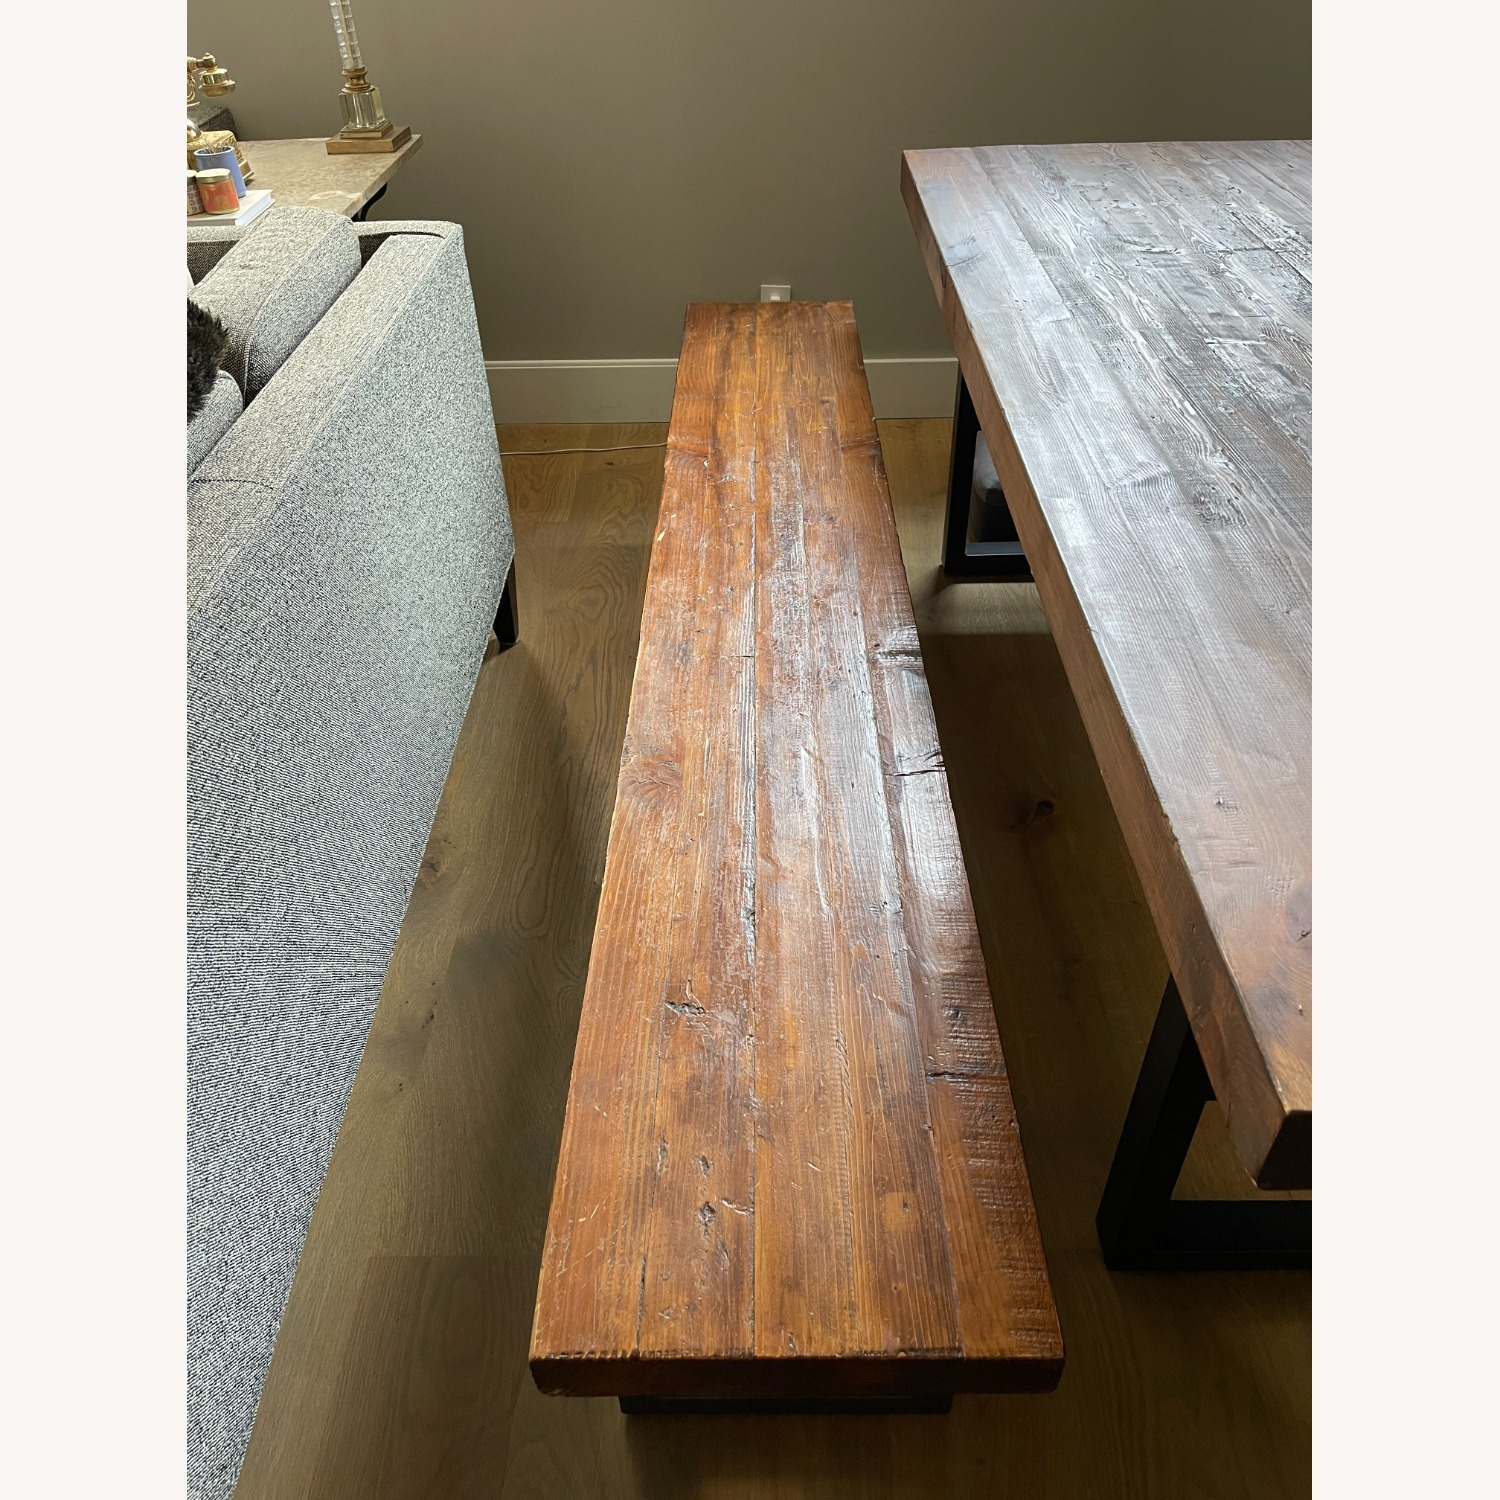 Pottery Barn Griffin Reclaimed Wood Dining Bench - image-2